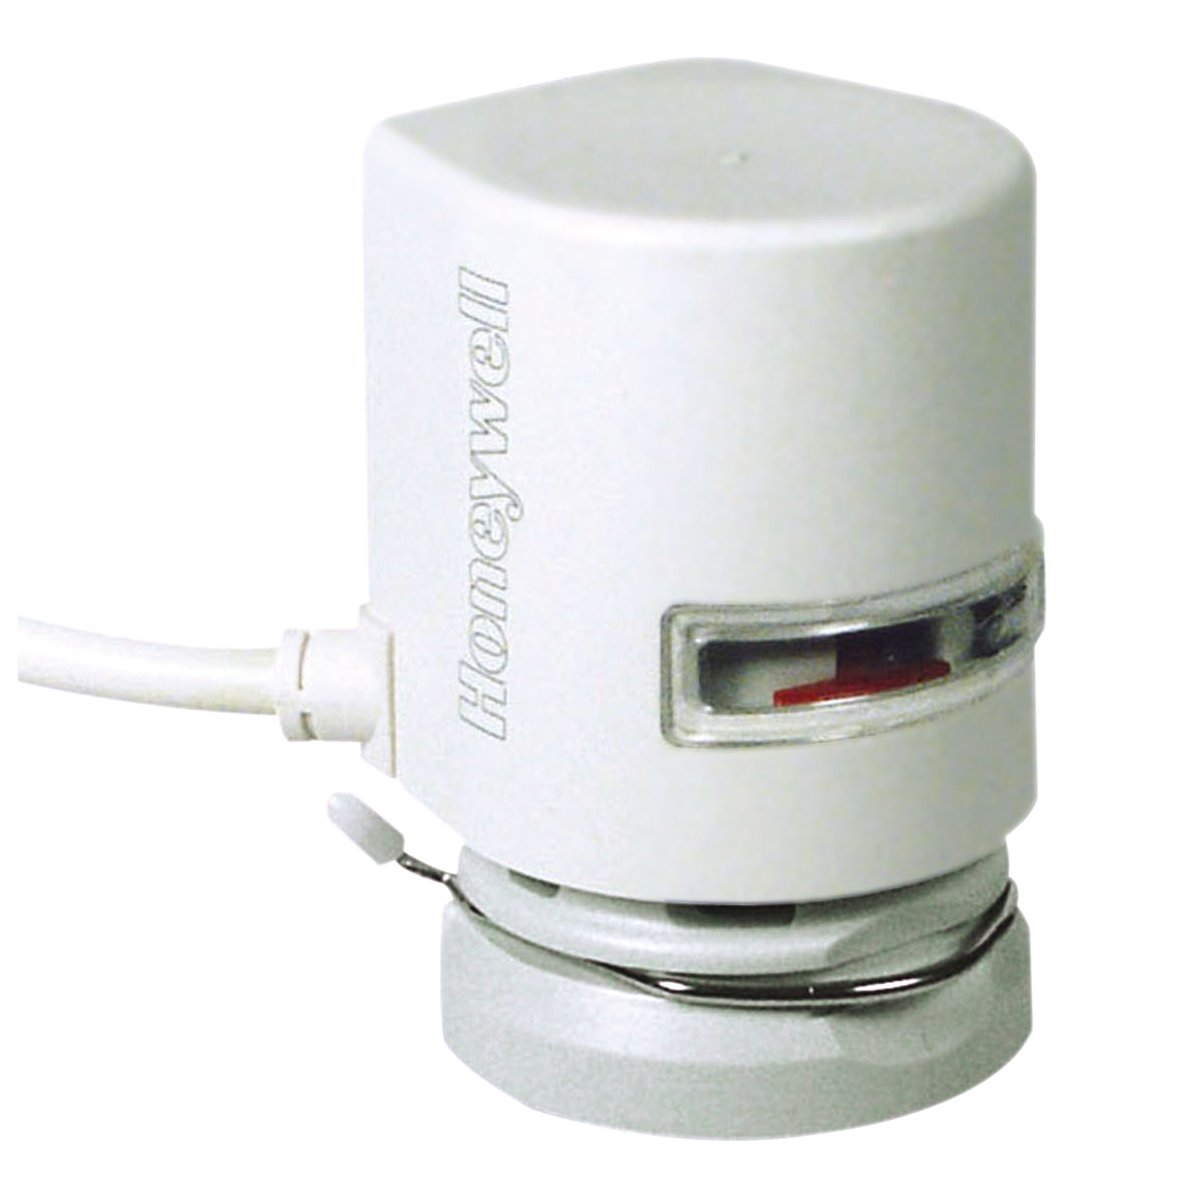 Honeywell MT4-230-NO evohome Thermostat ouvert hors tension